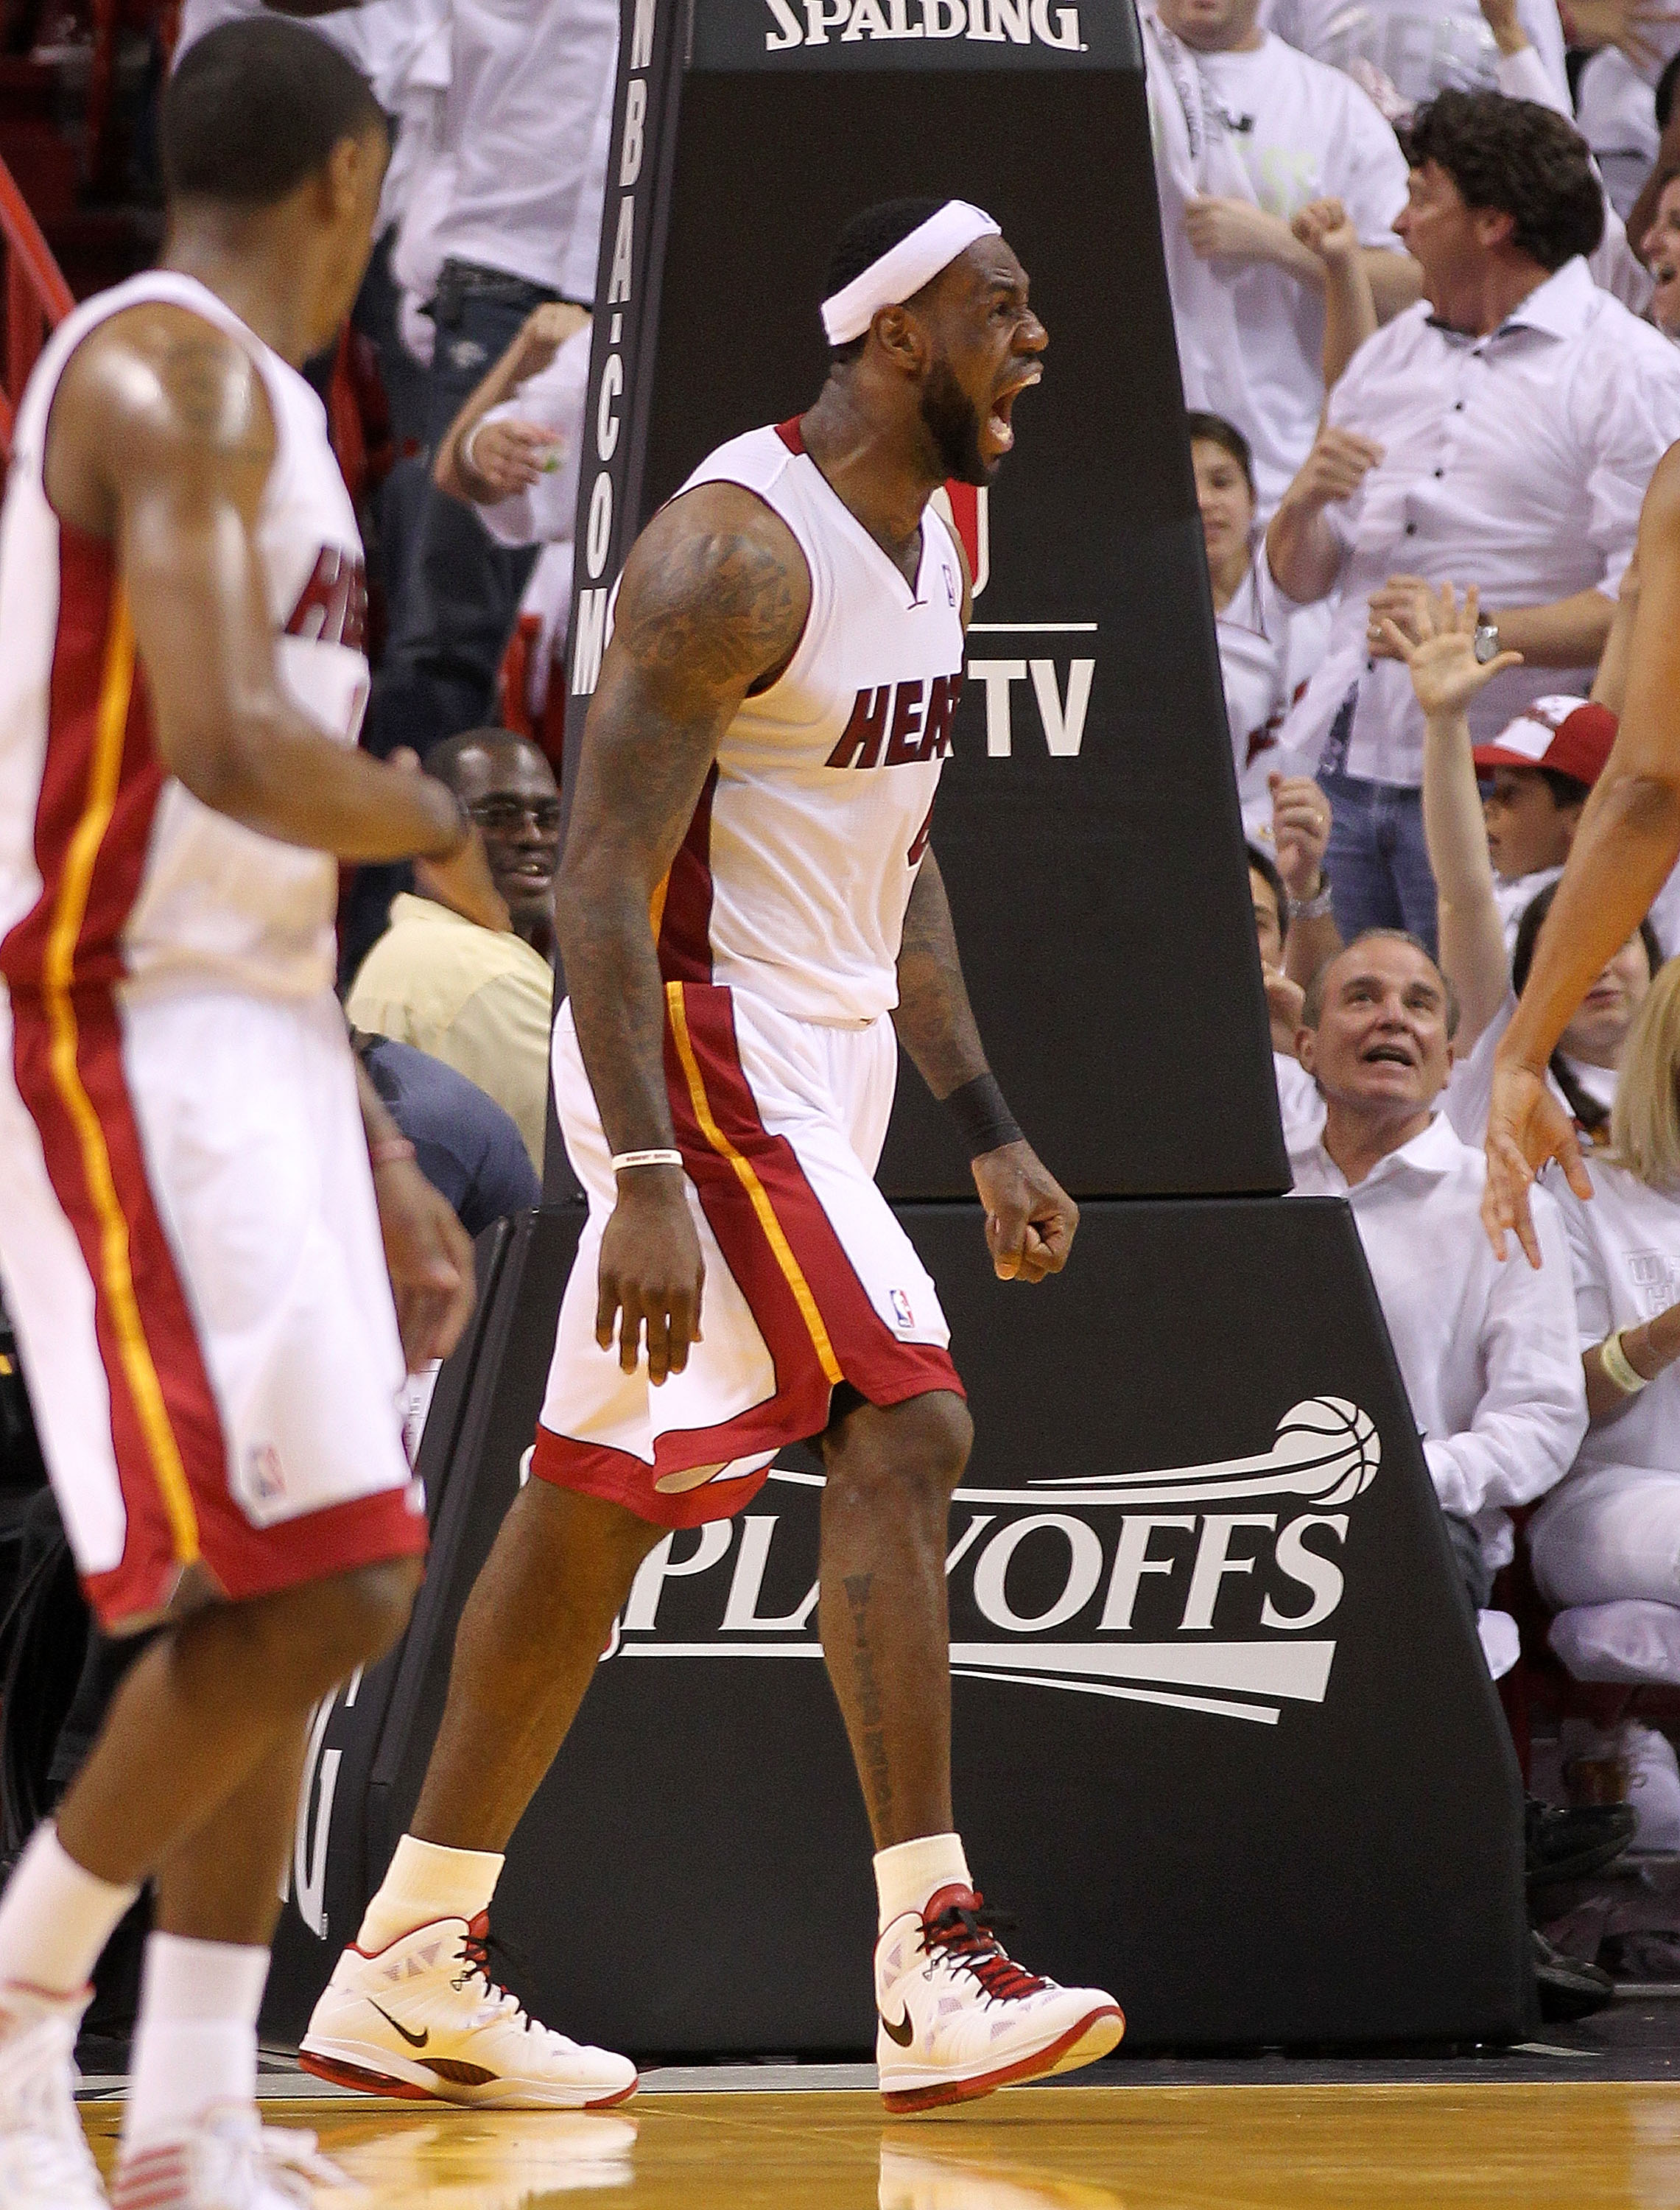 Guy in top right corner is more jacked than LeBron...